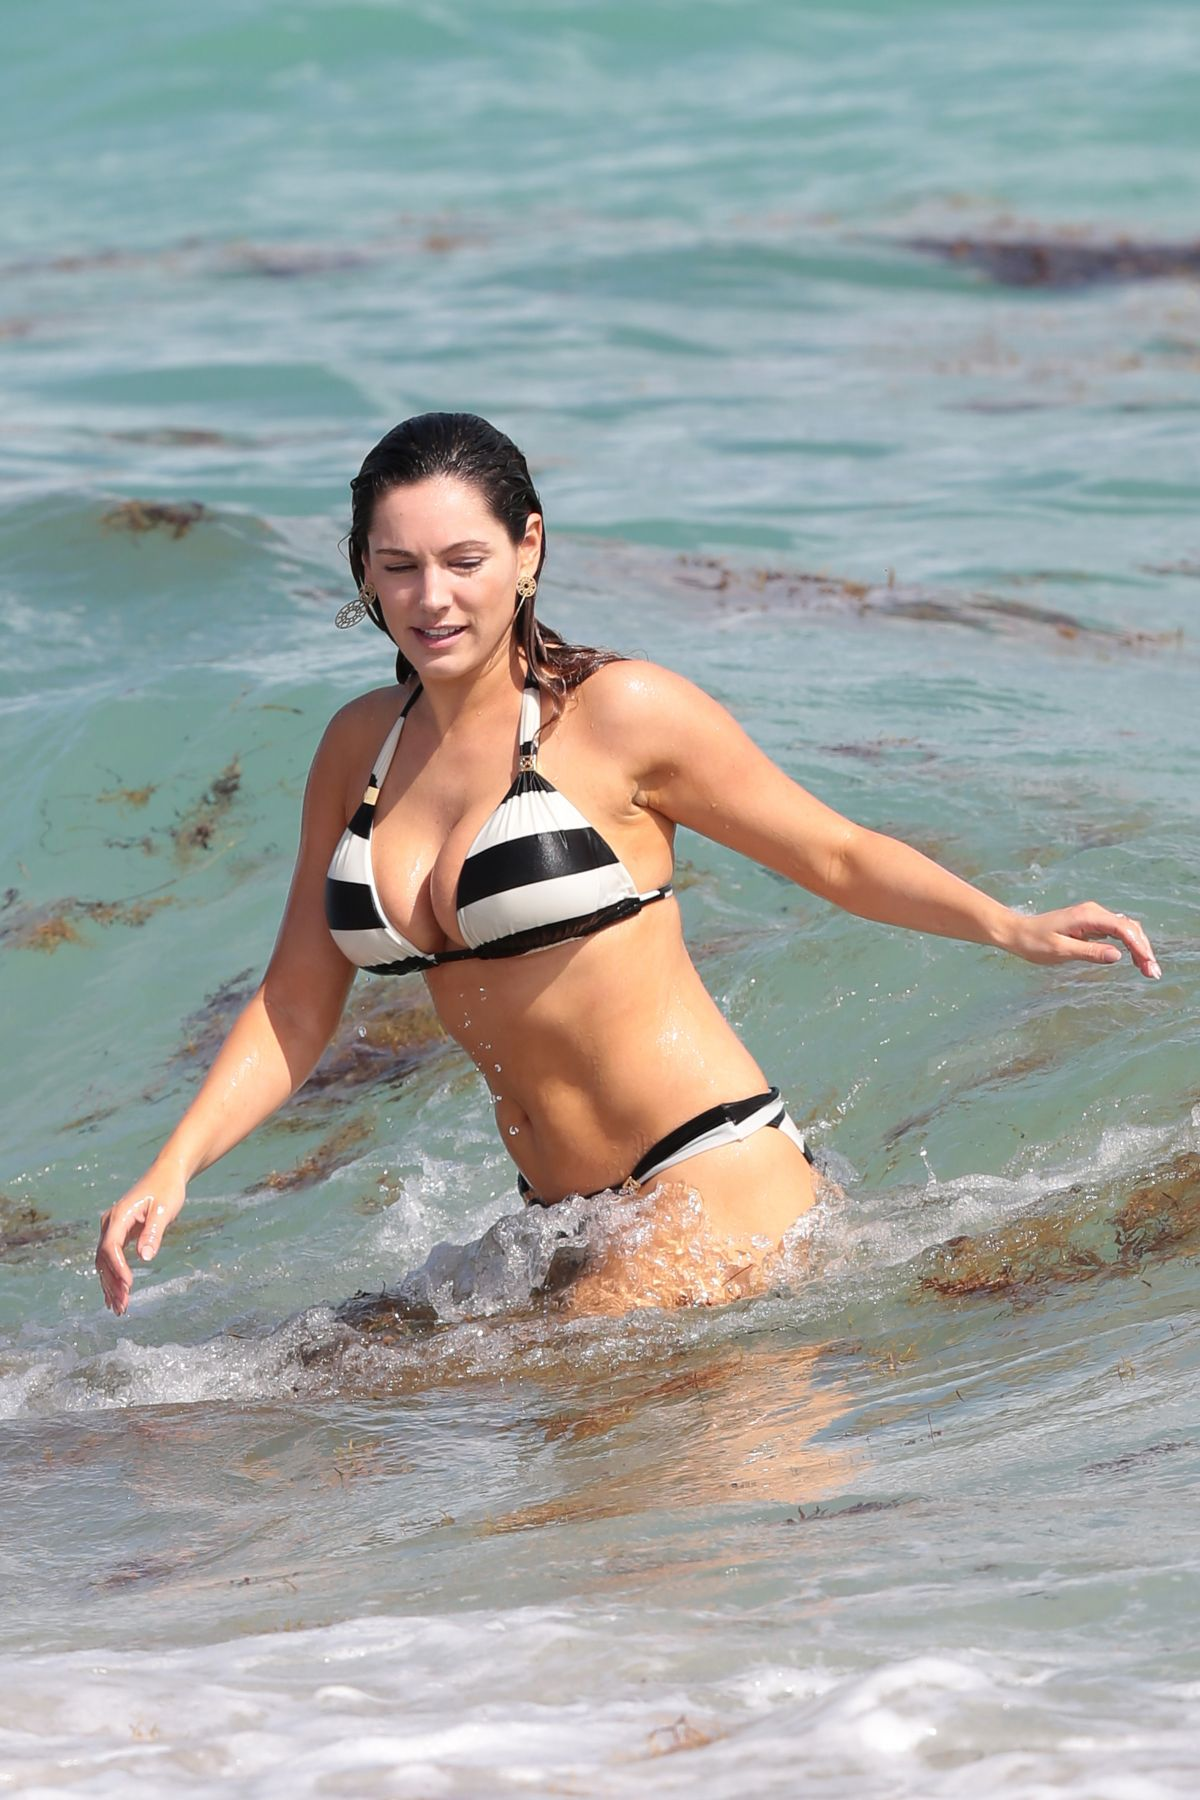 Kelly Brook in Patterned Bikini on the beach in Thailand Pic 16 of 35